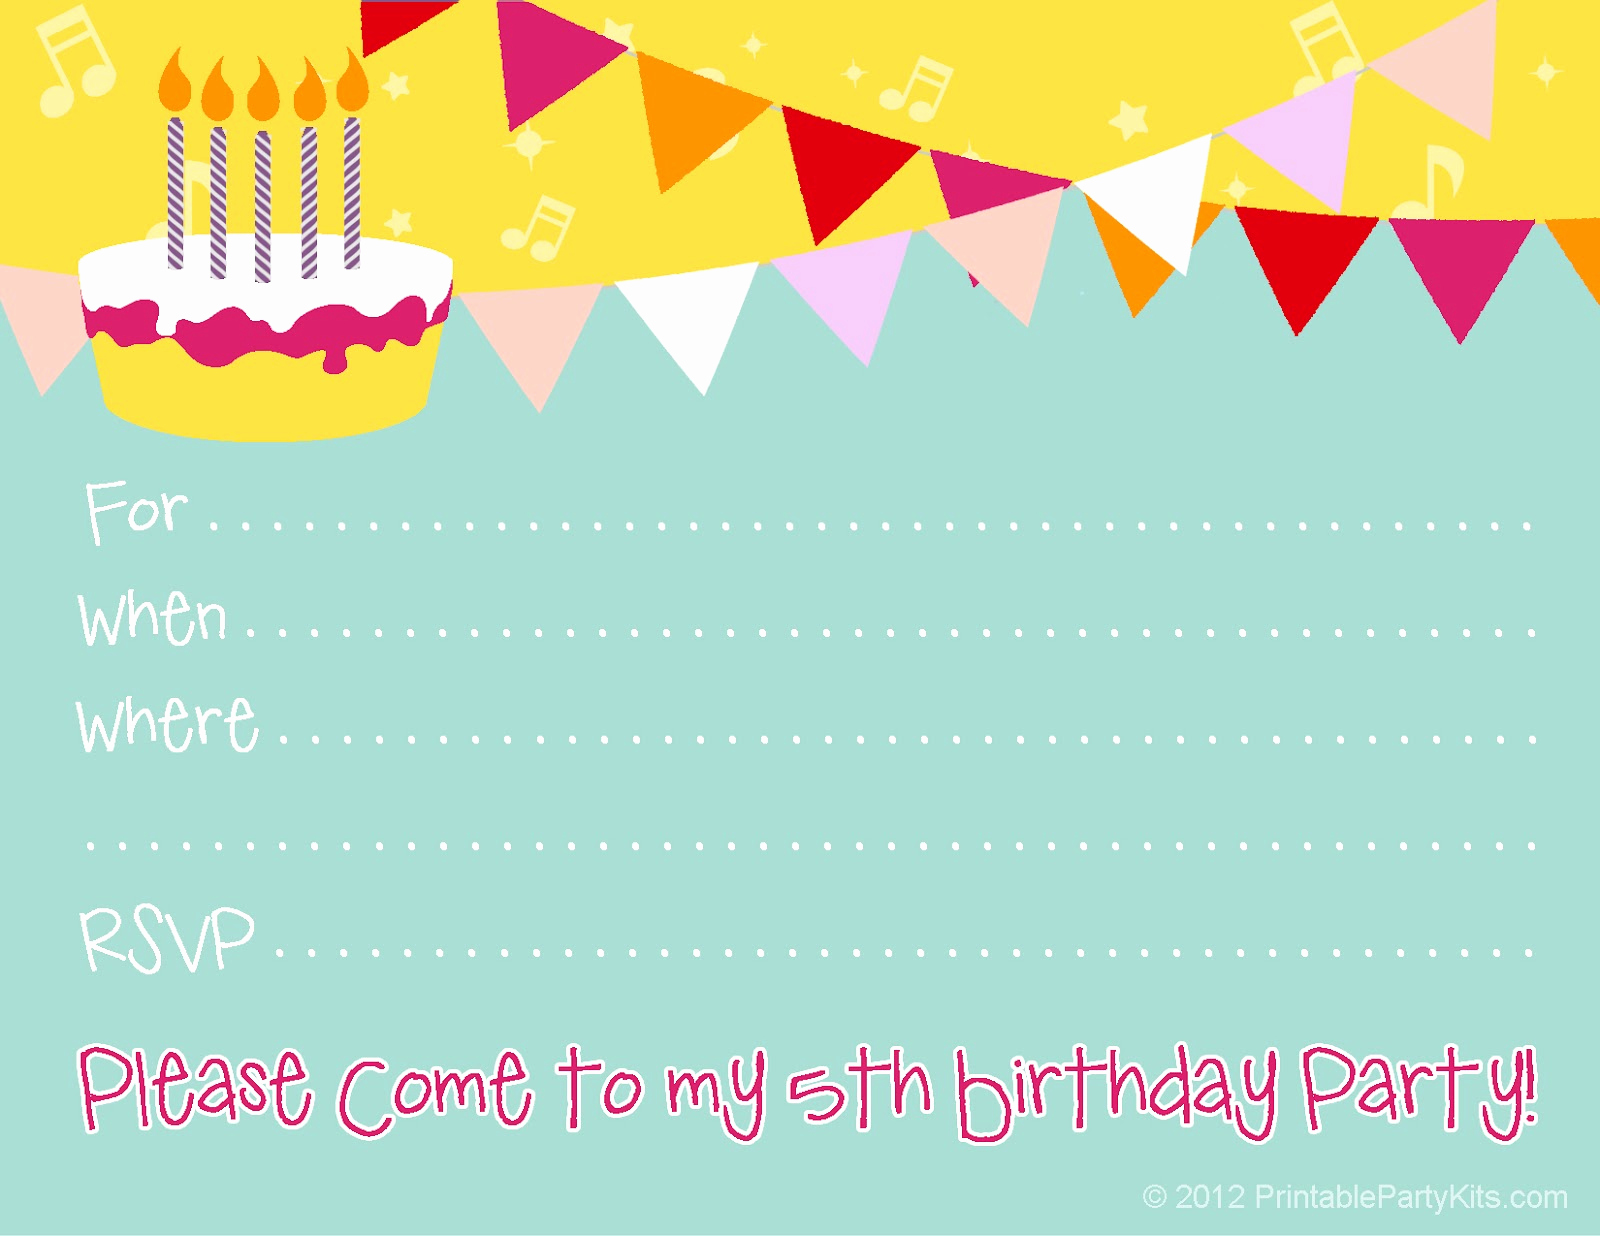 Kids Birthday Party Invitation Template Inspirational Free Birthday Party Invitations for Girl – Free Printable